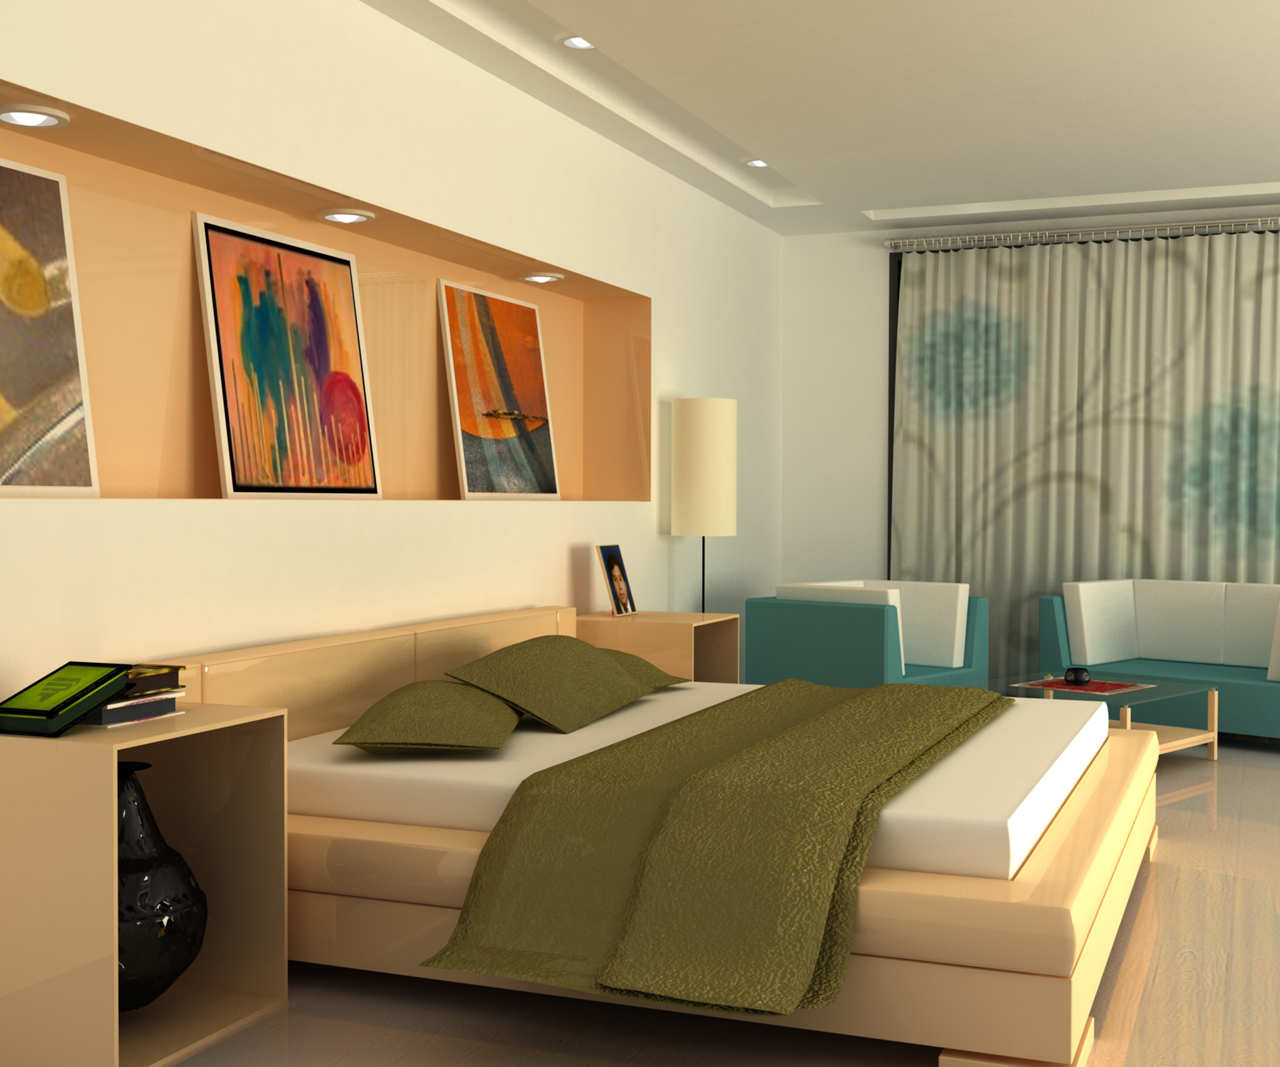 Interior exterior plan try to design your 3d bedroom online for 3d interior designs images